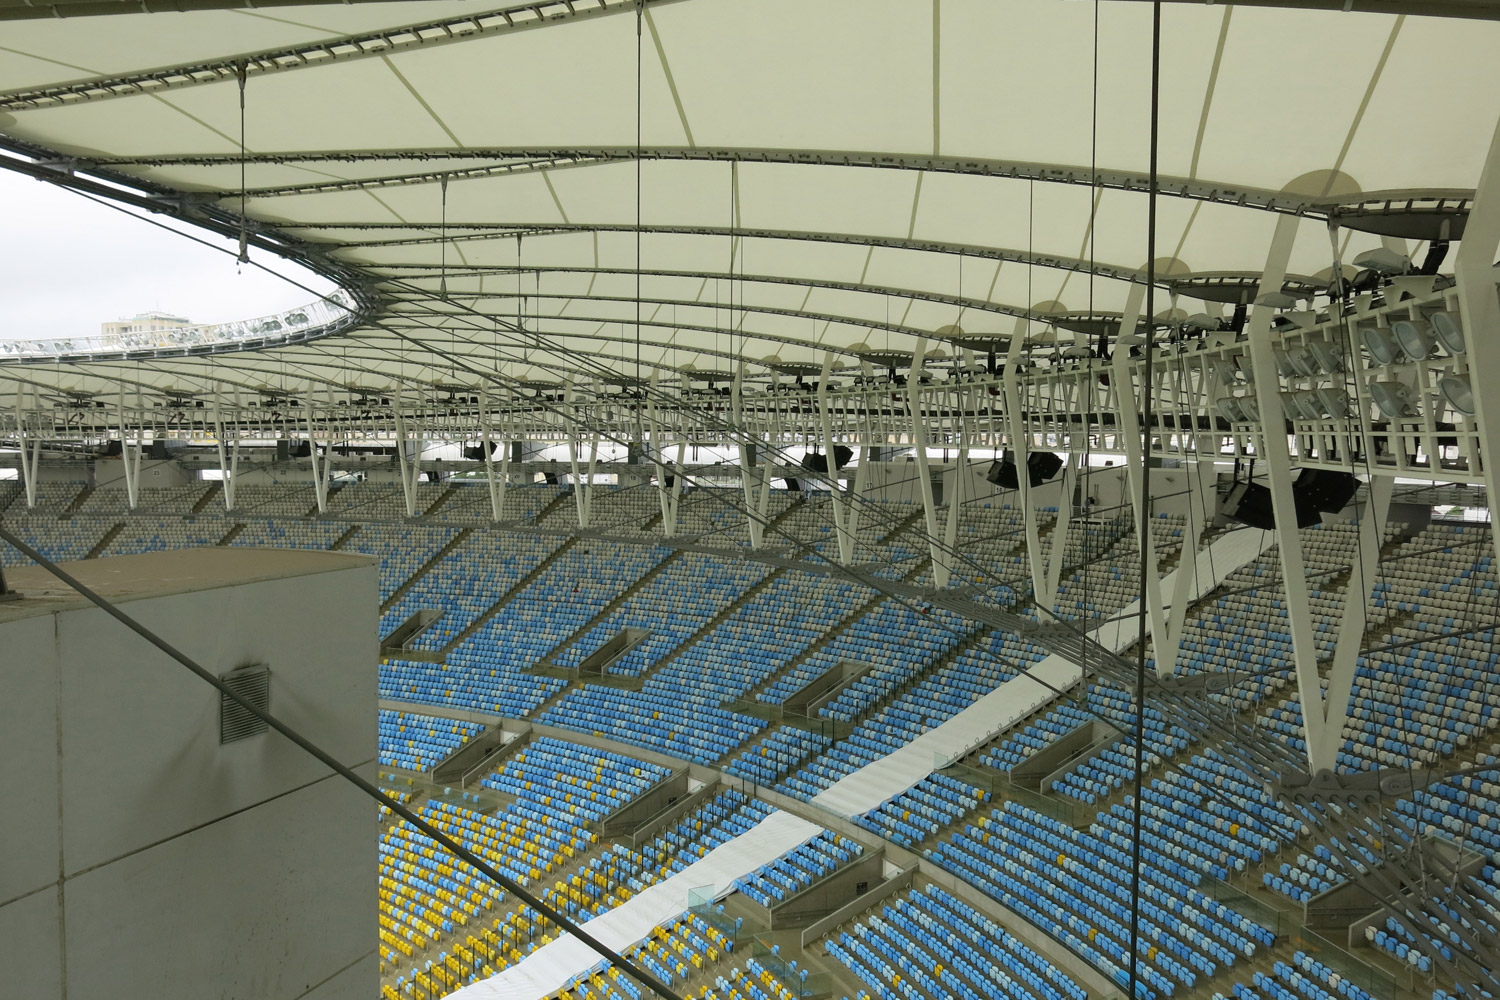 Maracana Stadium in Rio de Janeiro, Brazil. One of the biggest soccer stadiums in the world, home of the 2014 Olympic Games and World Cup. WSDG was called for consulting and installation of the audio/video of the whole facility. Detail of the stadium